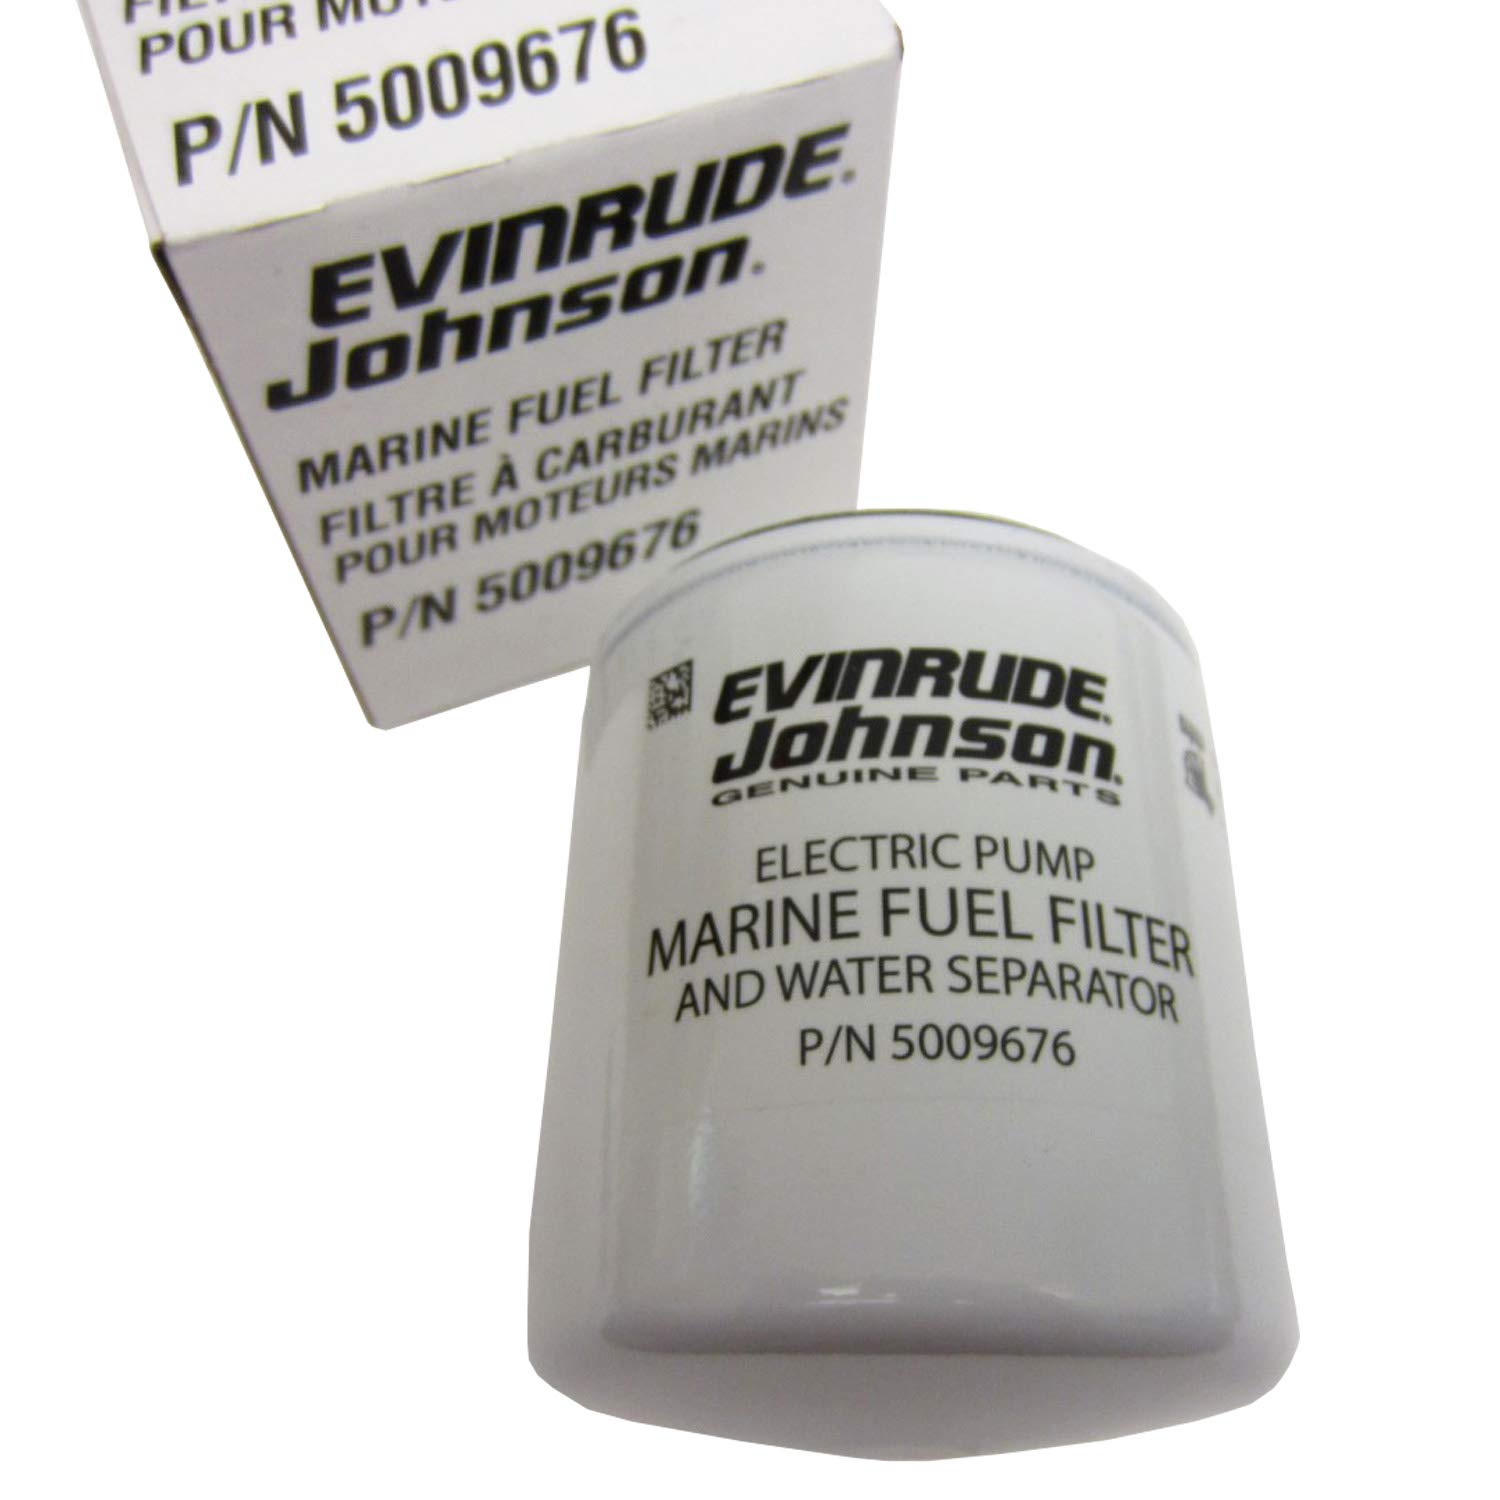 OEM Evinrude Johnson BRP Fuel Filter/Water Separator Kit, 10 Micron - 502906 by Johnson Evinrude OMC